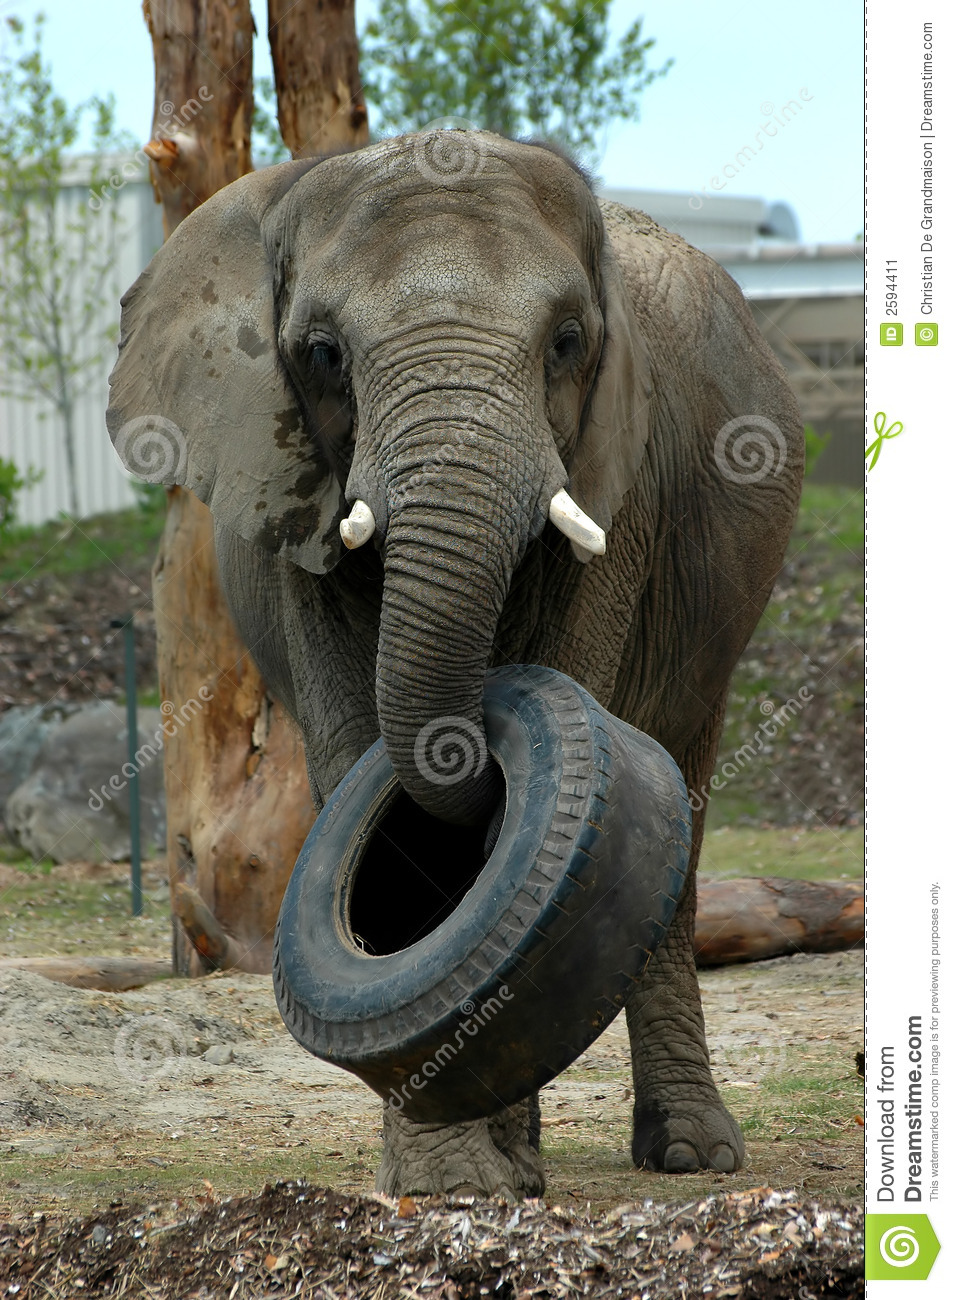 Elephant Picking Up Tire Stock Image - Image: 2594411